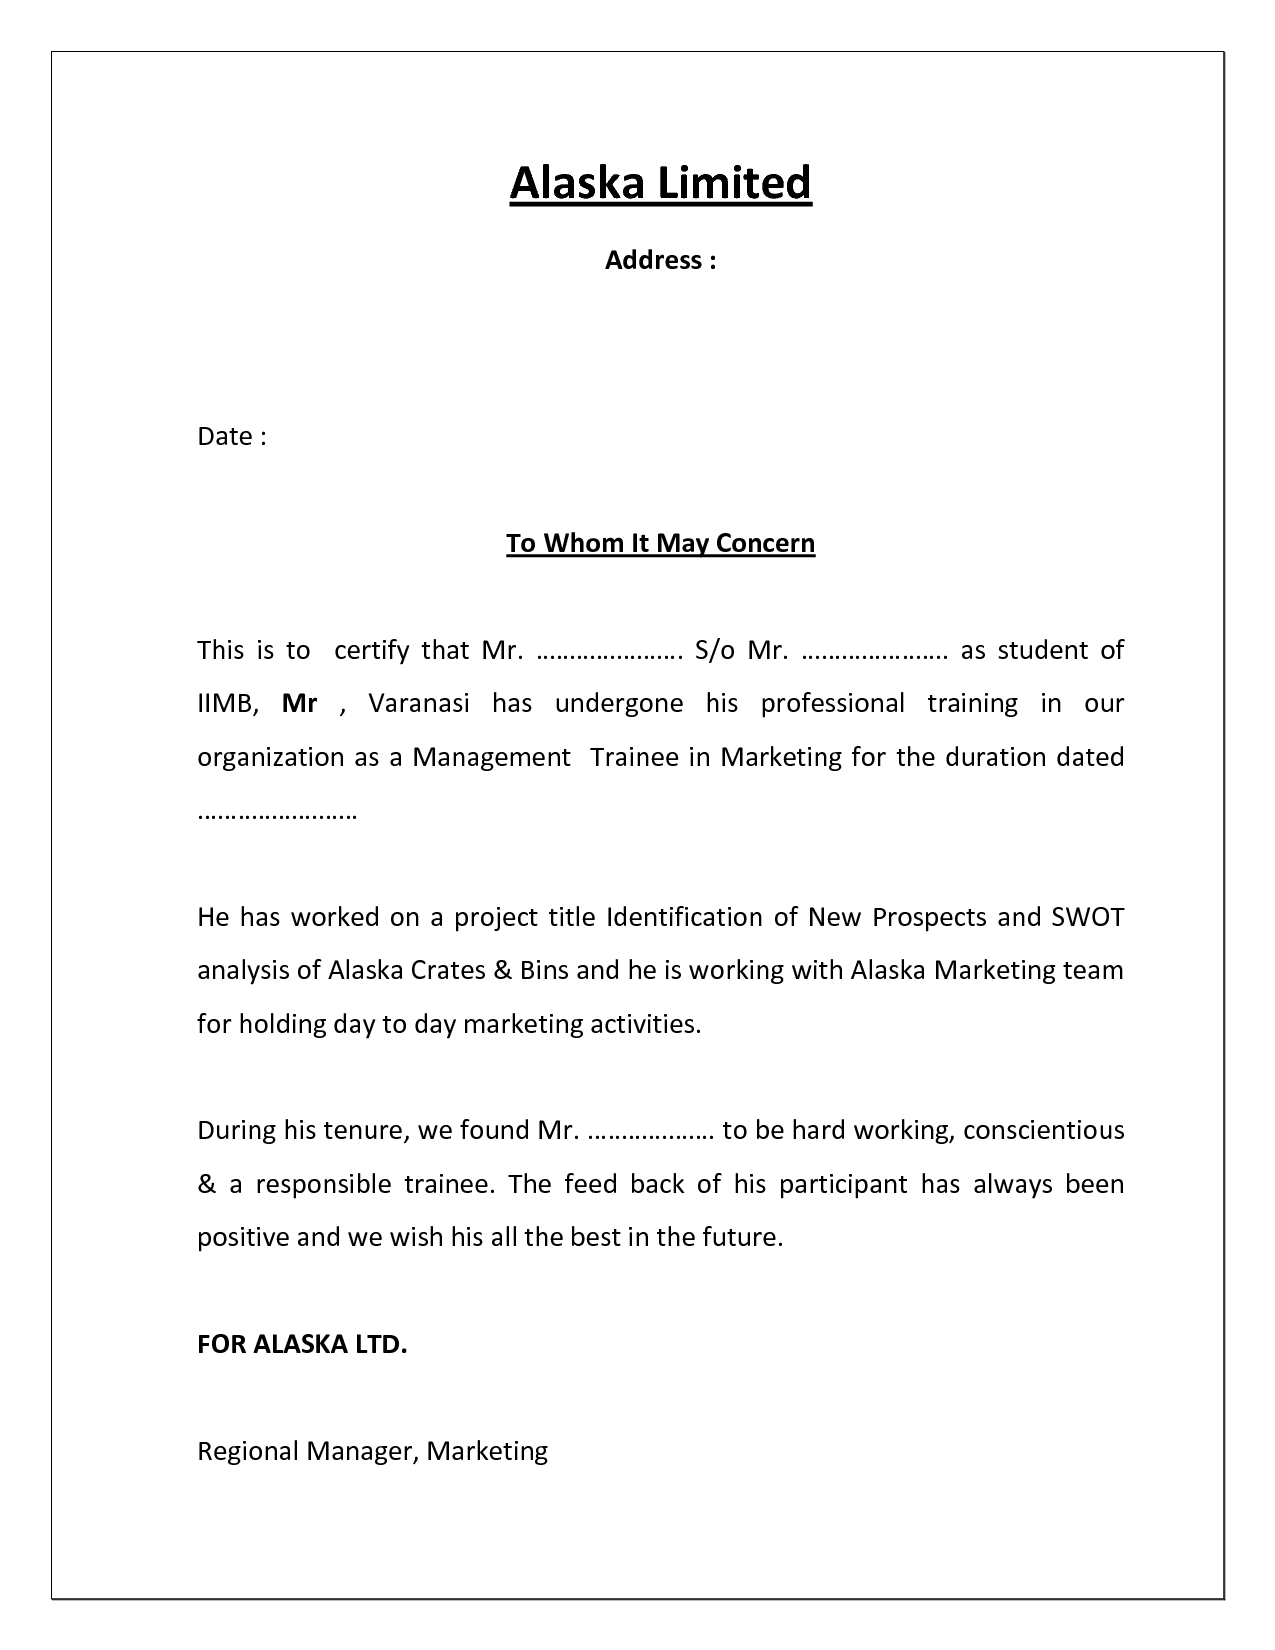 Project Completion Certificate Template | Cover Latter Within Certificate Template For Project Completion